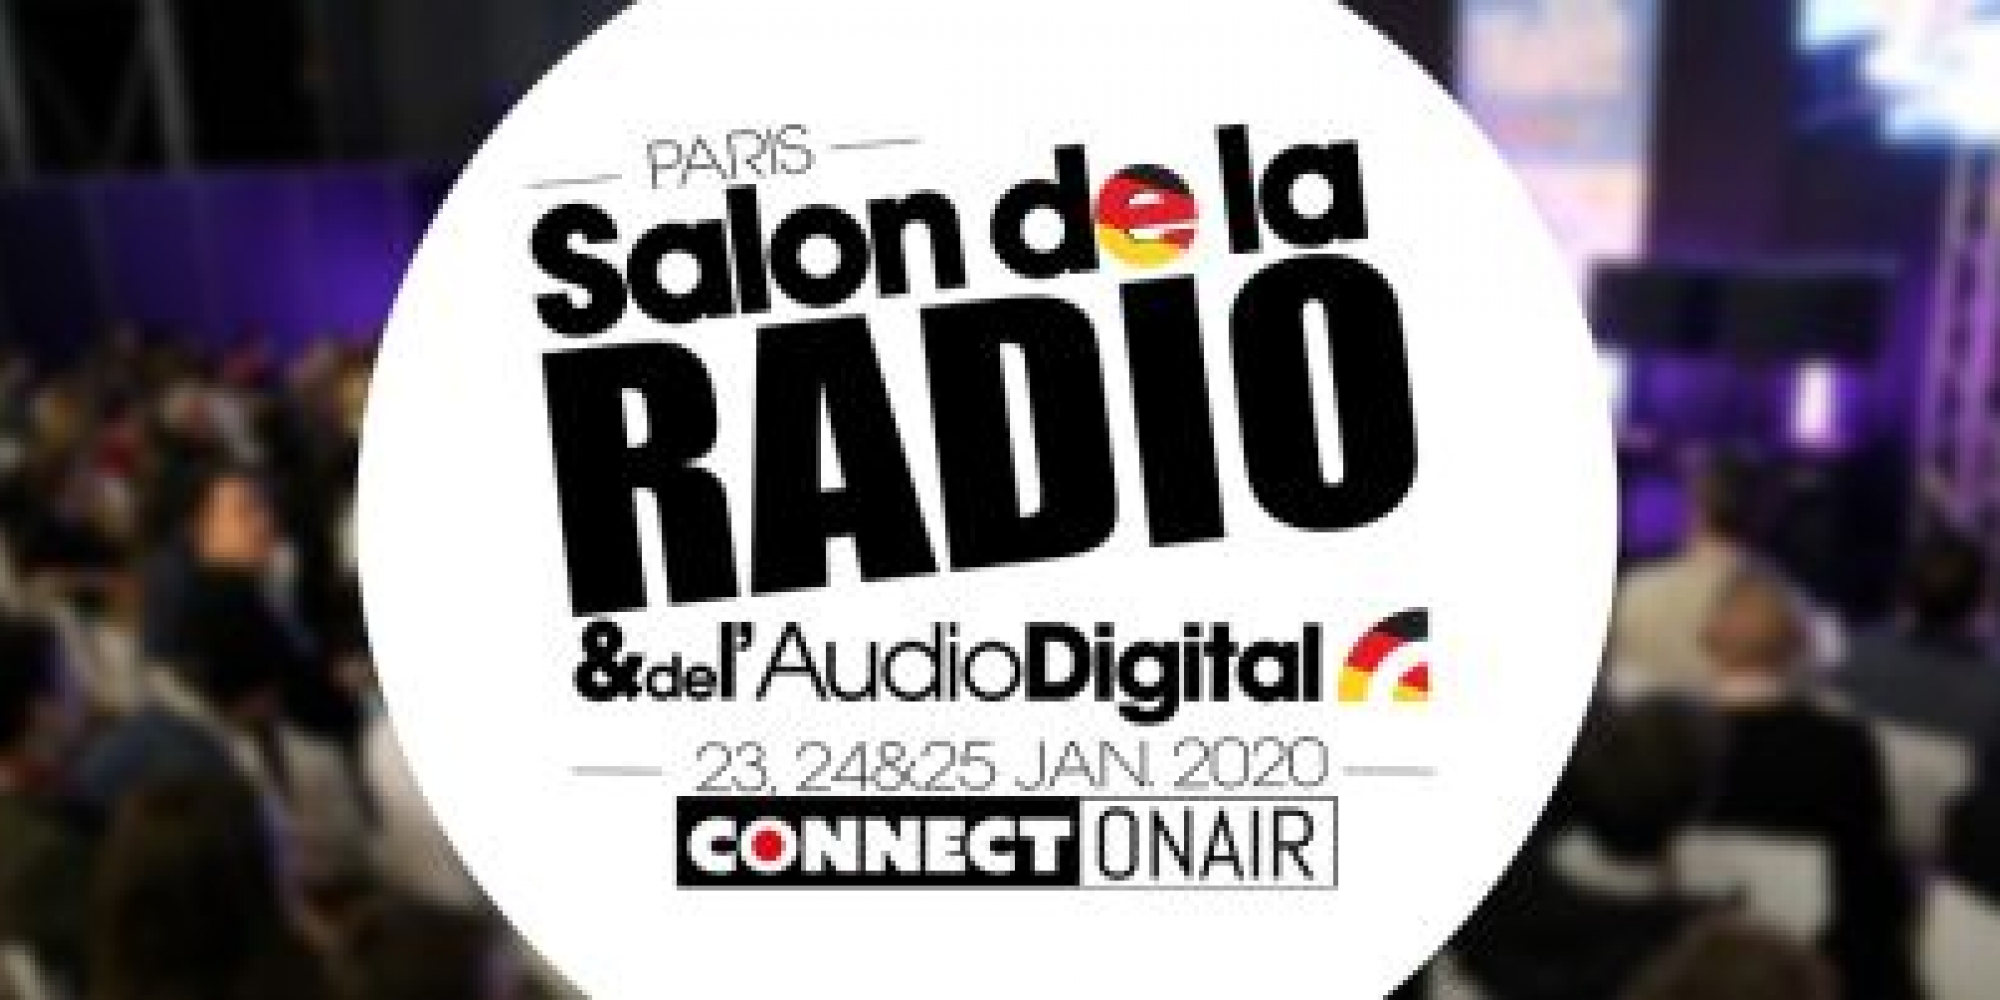 Lets meet at the European Radio and Digital Audio Show 2020